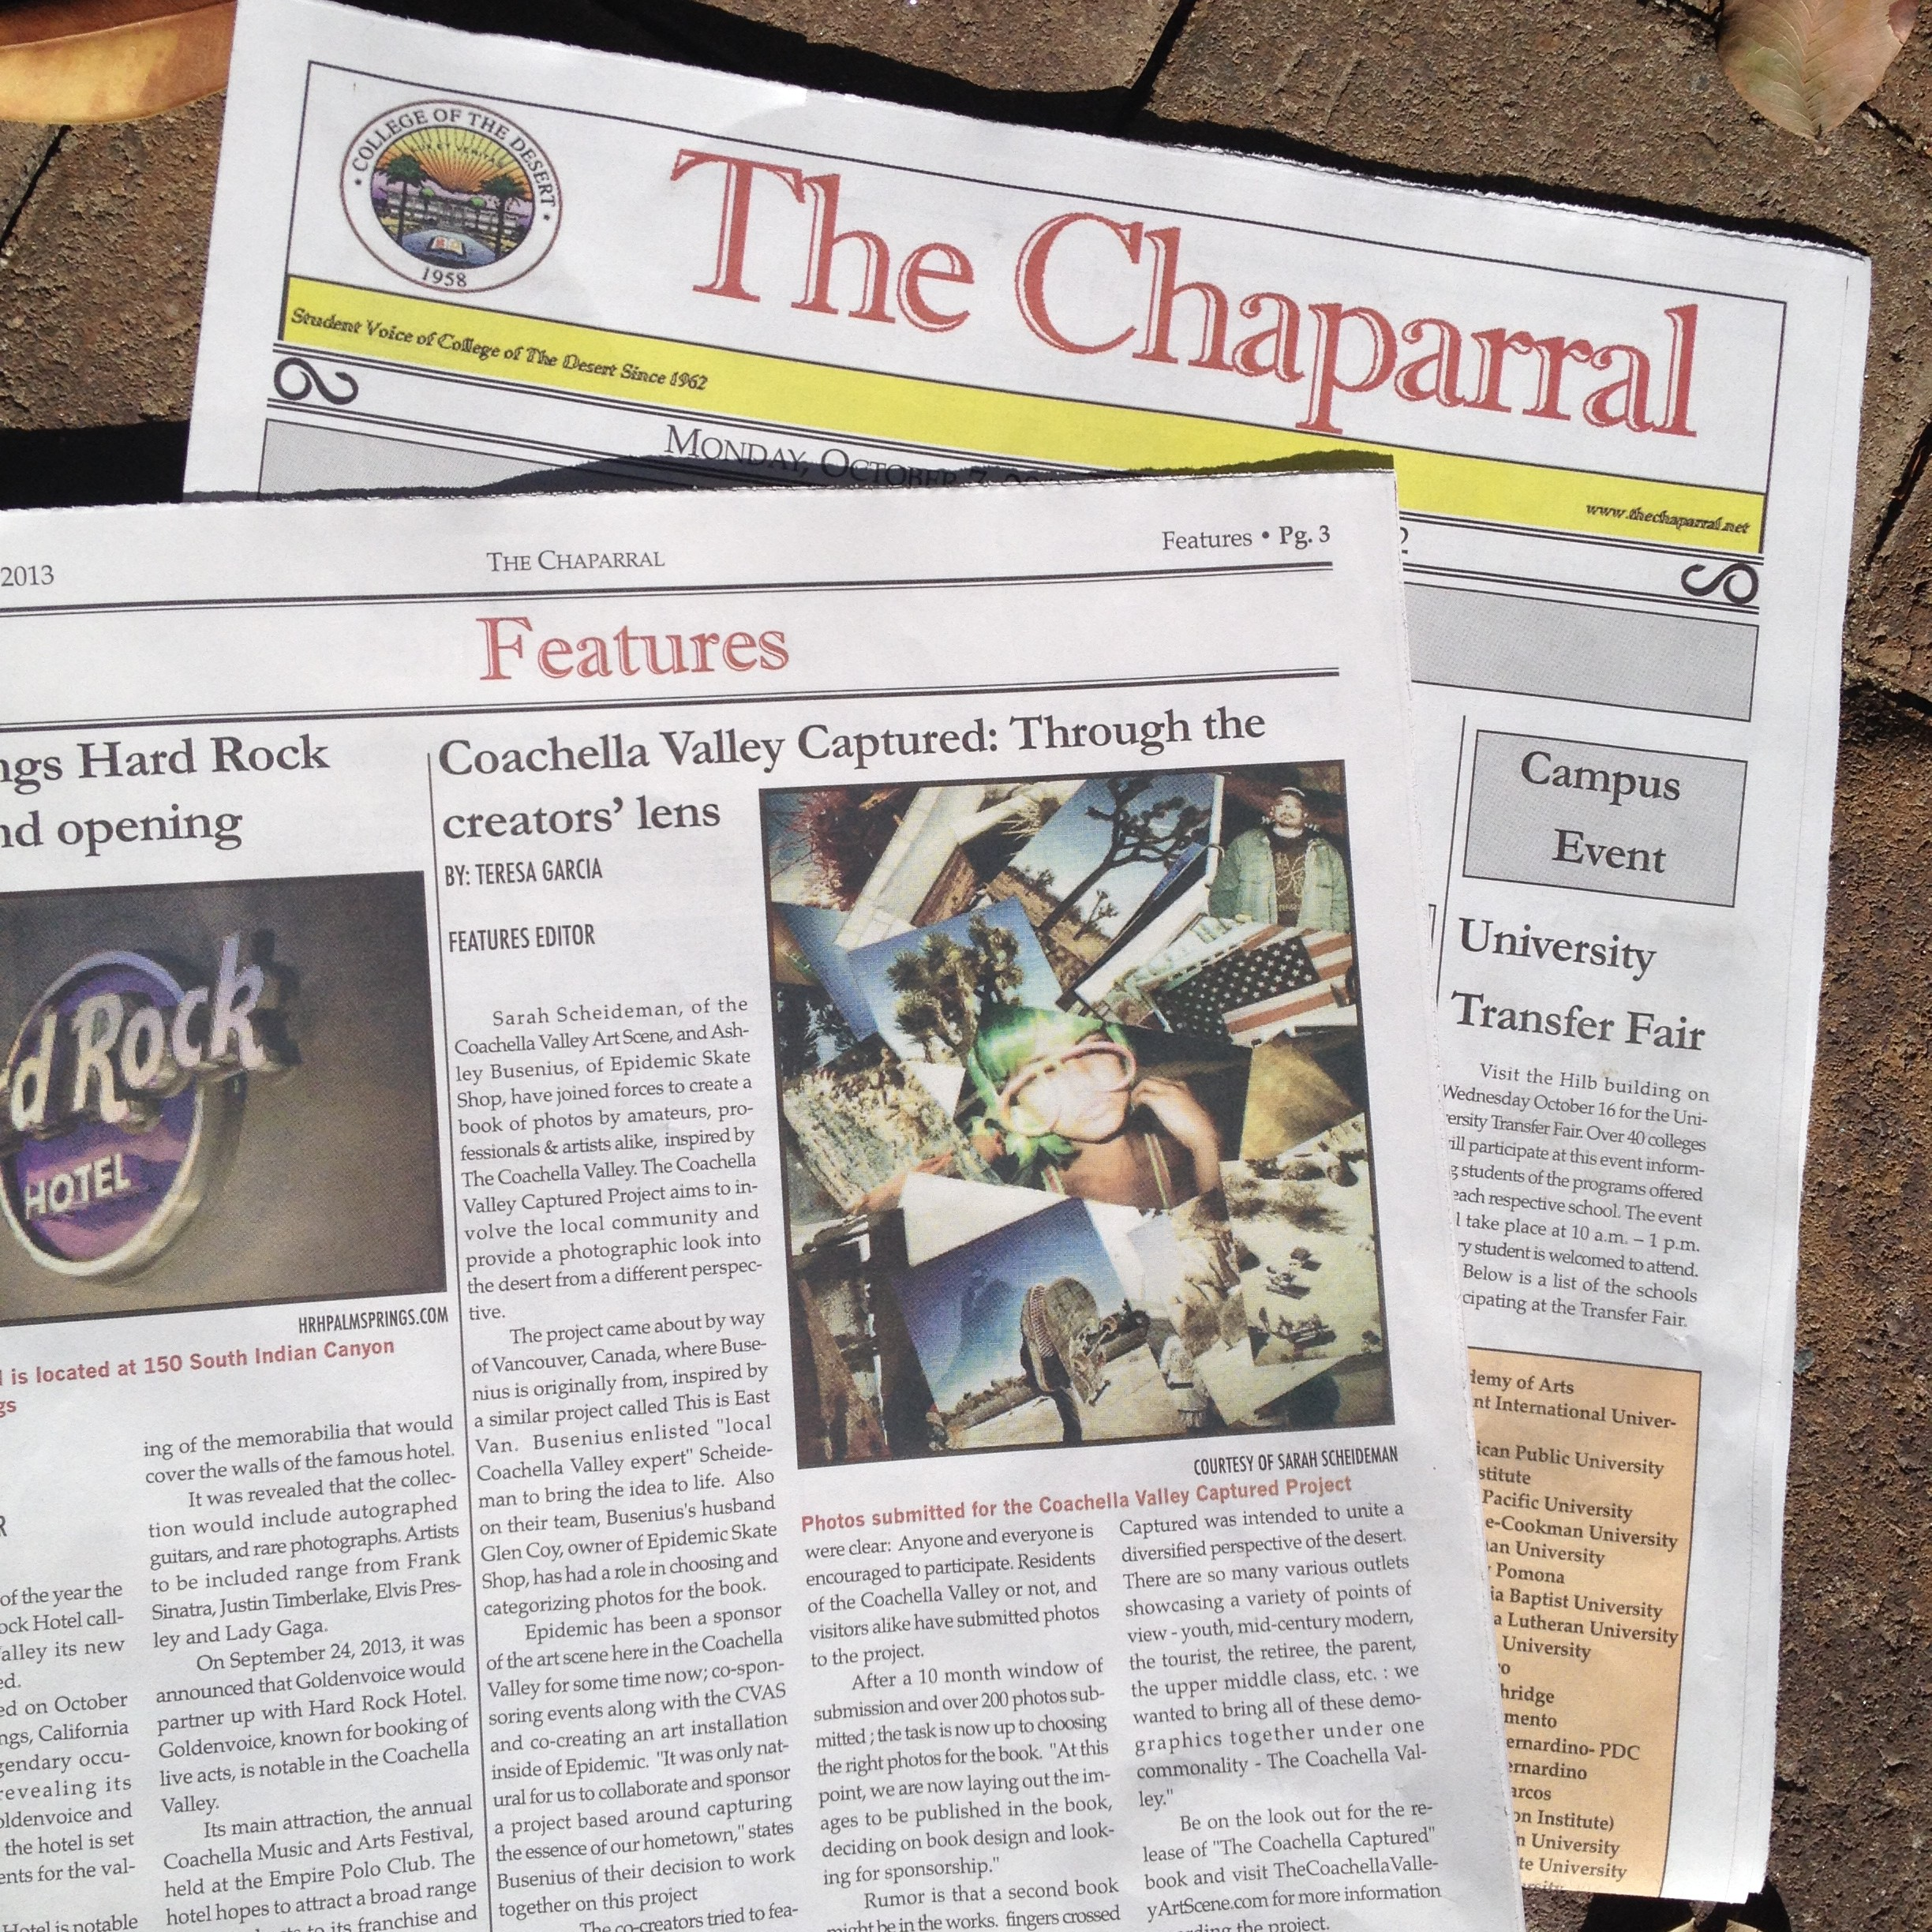 The Coachella Valley Art Scene gets interviewed by College of the Desert newspaper The Chaparral